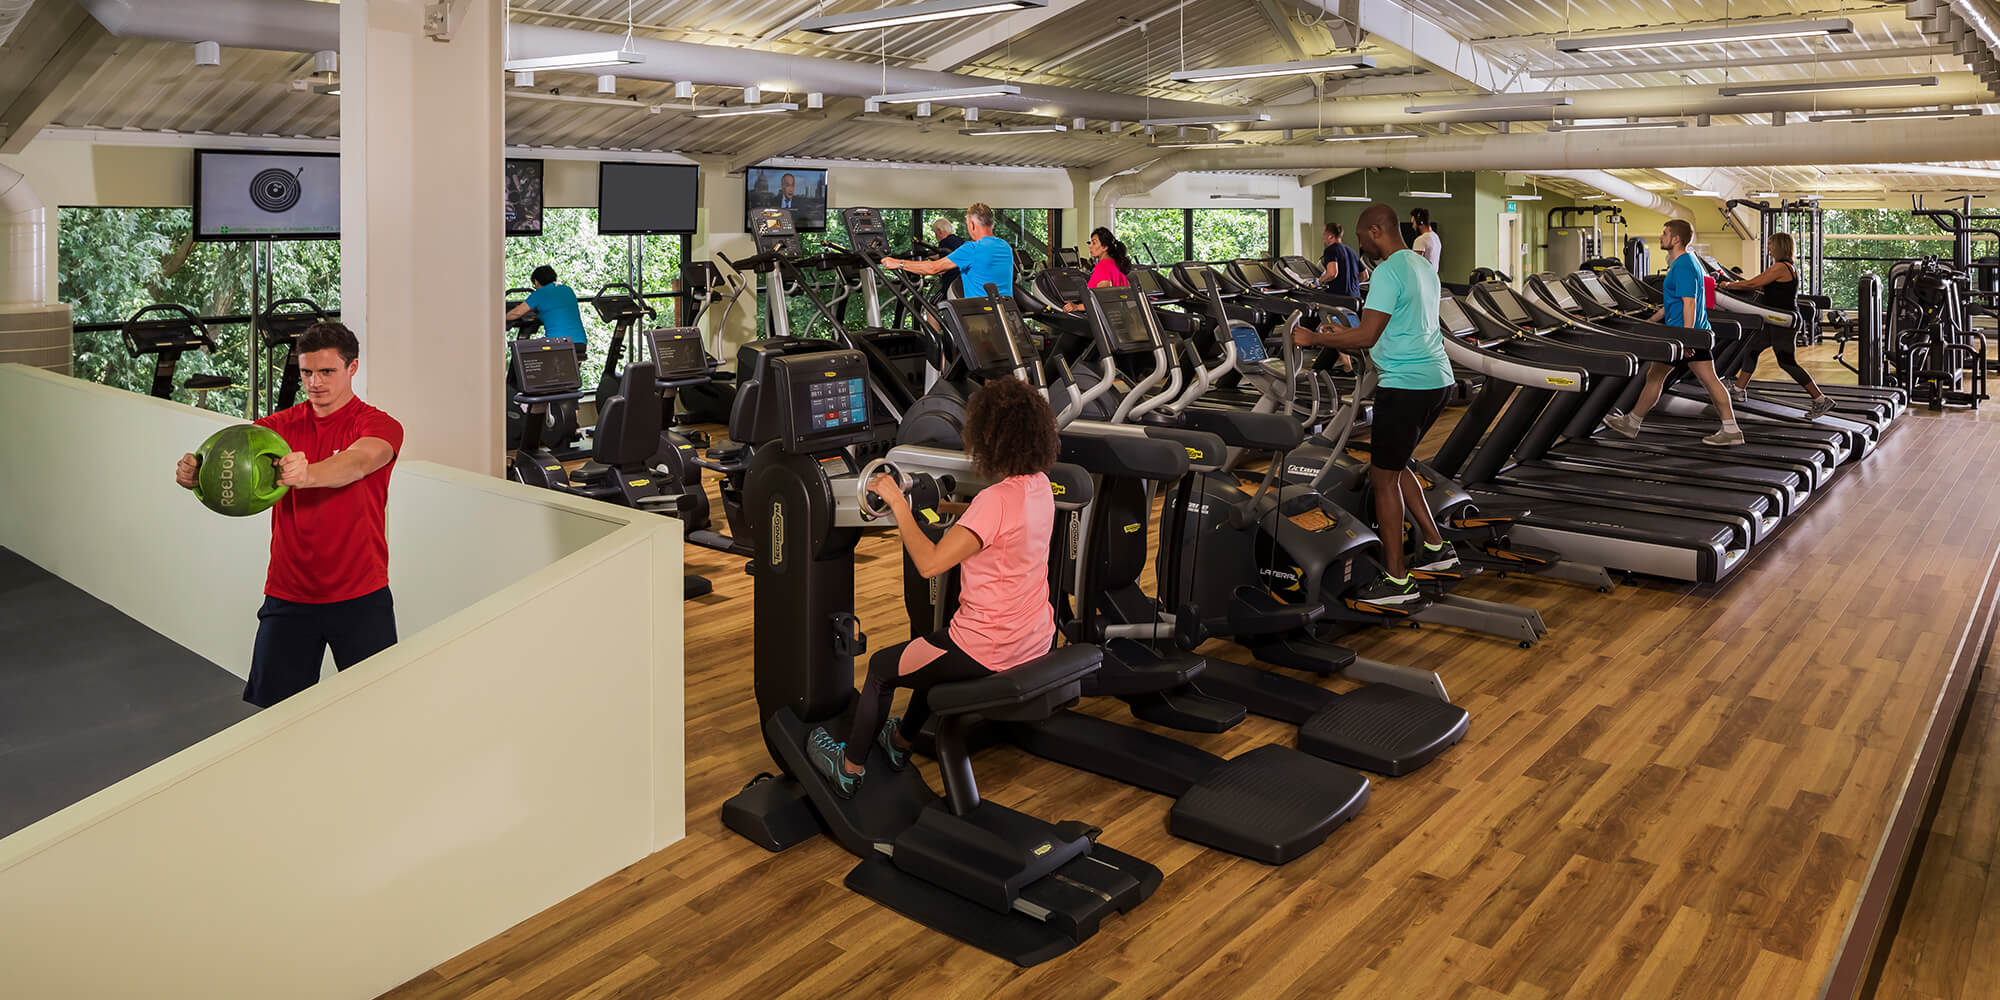 Nuffield fitness wellbeing centre